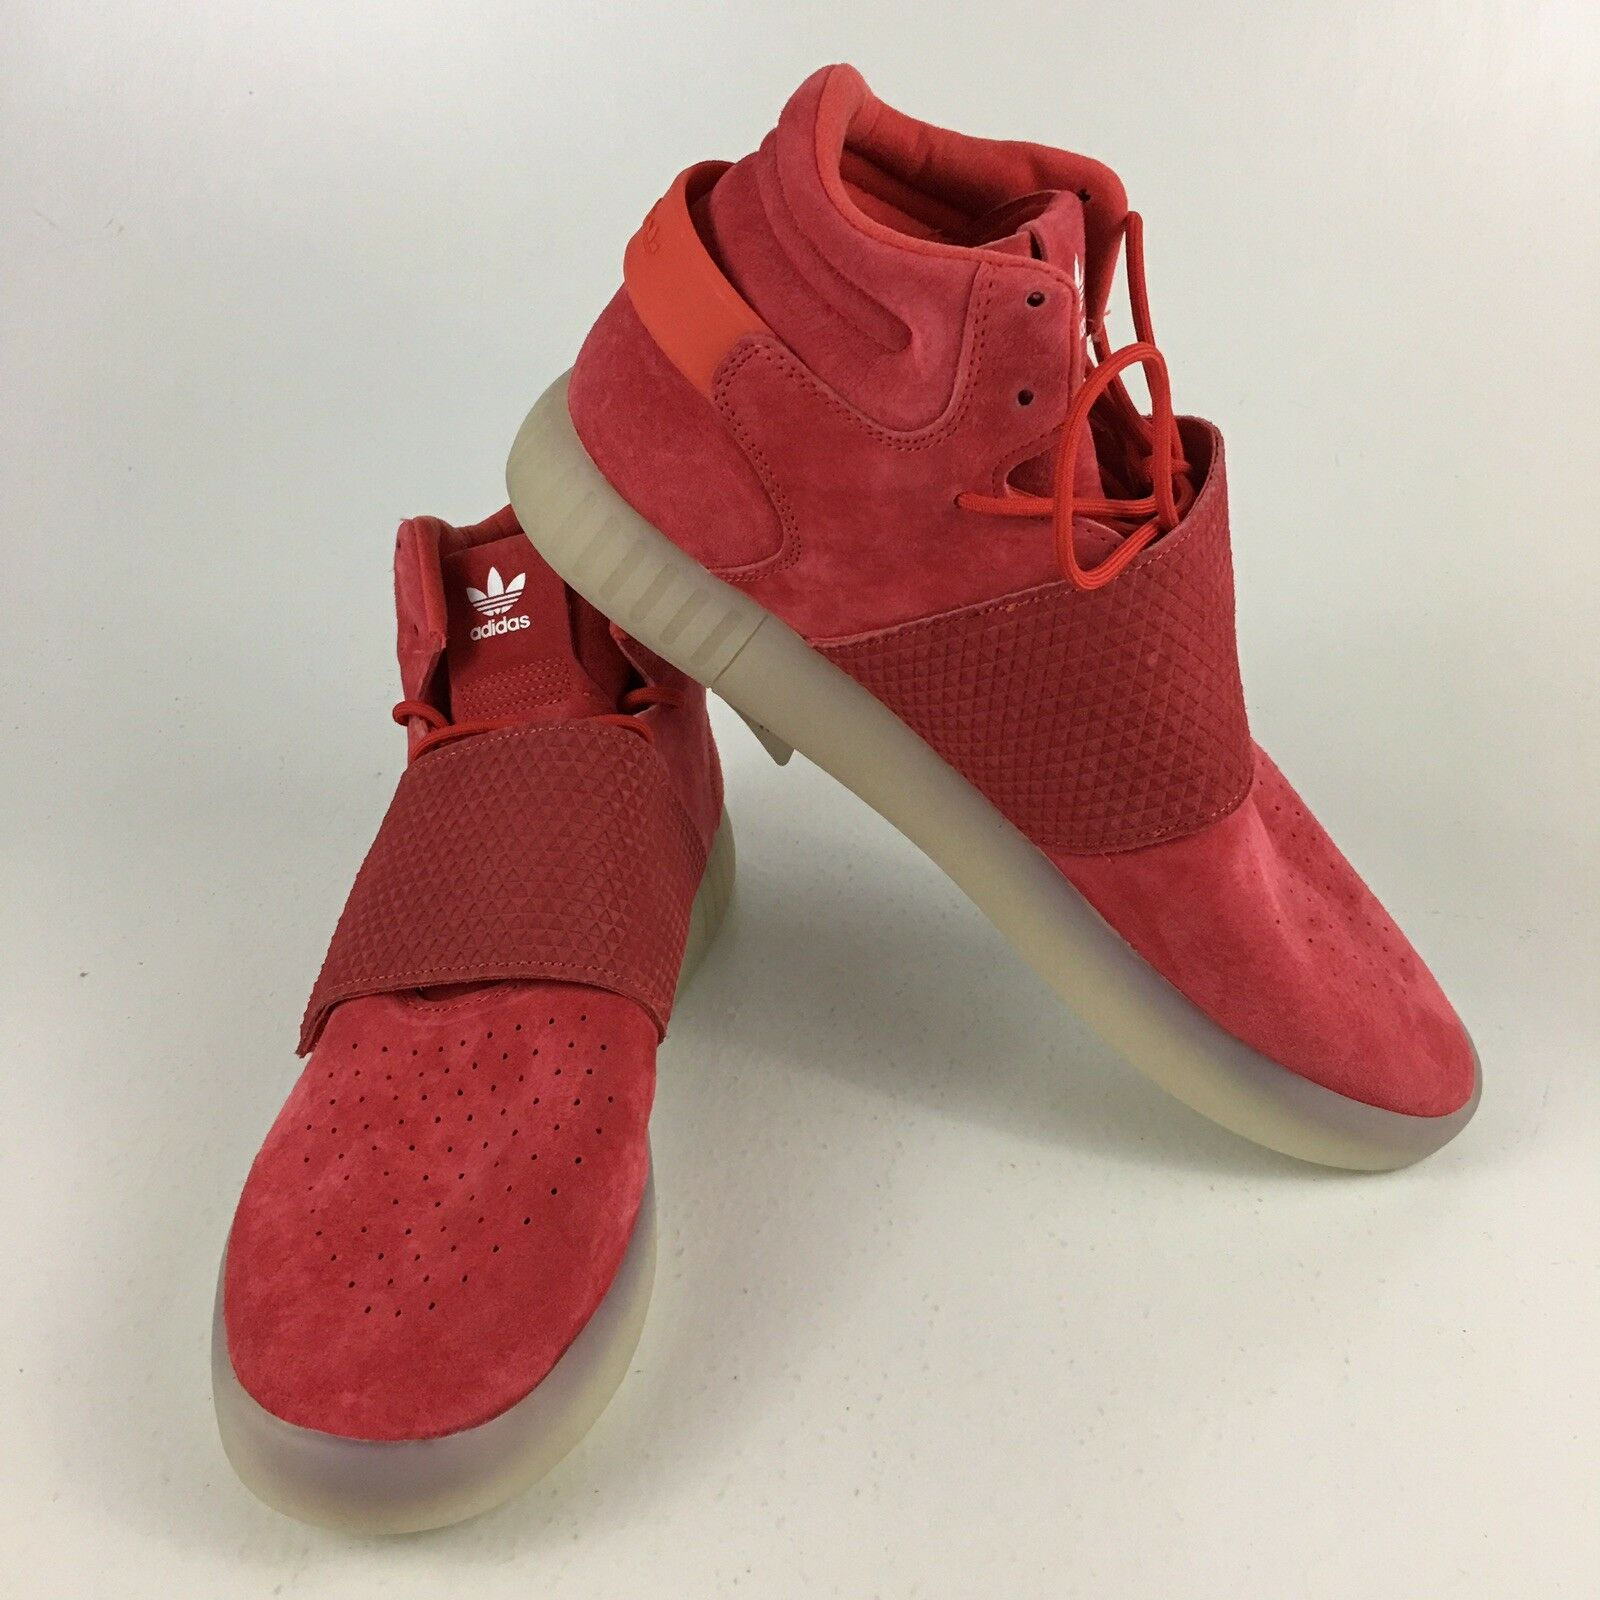 watch 06177 cfd5b New Adidas shoes Tubular Invader Strap Suede BB5039 Size 13 ...